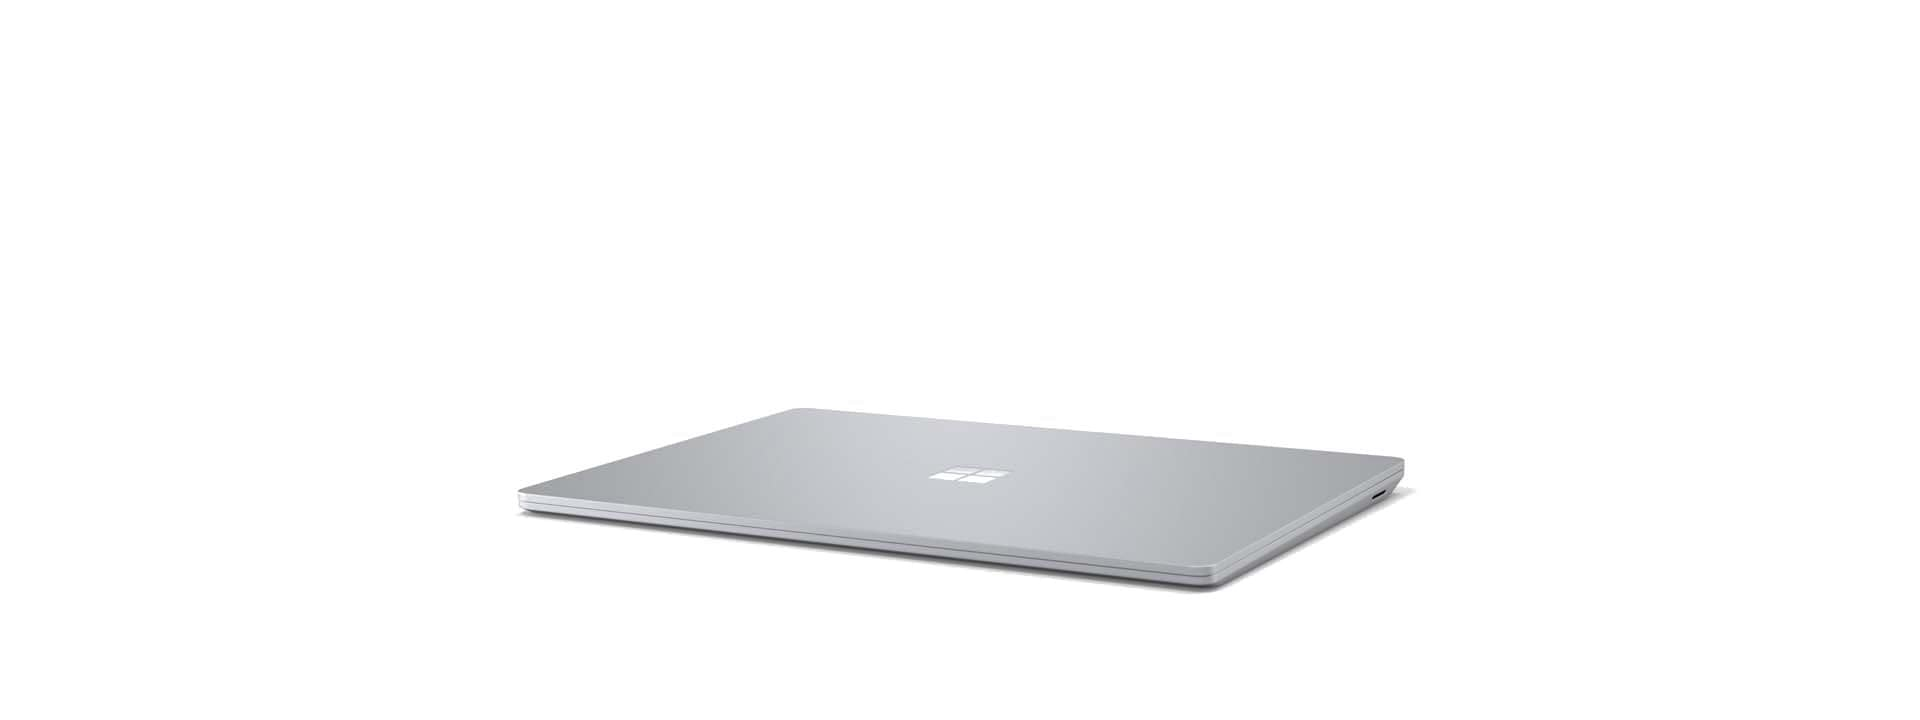 360 graders rotation af Surface Laptop 3